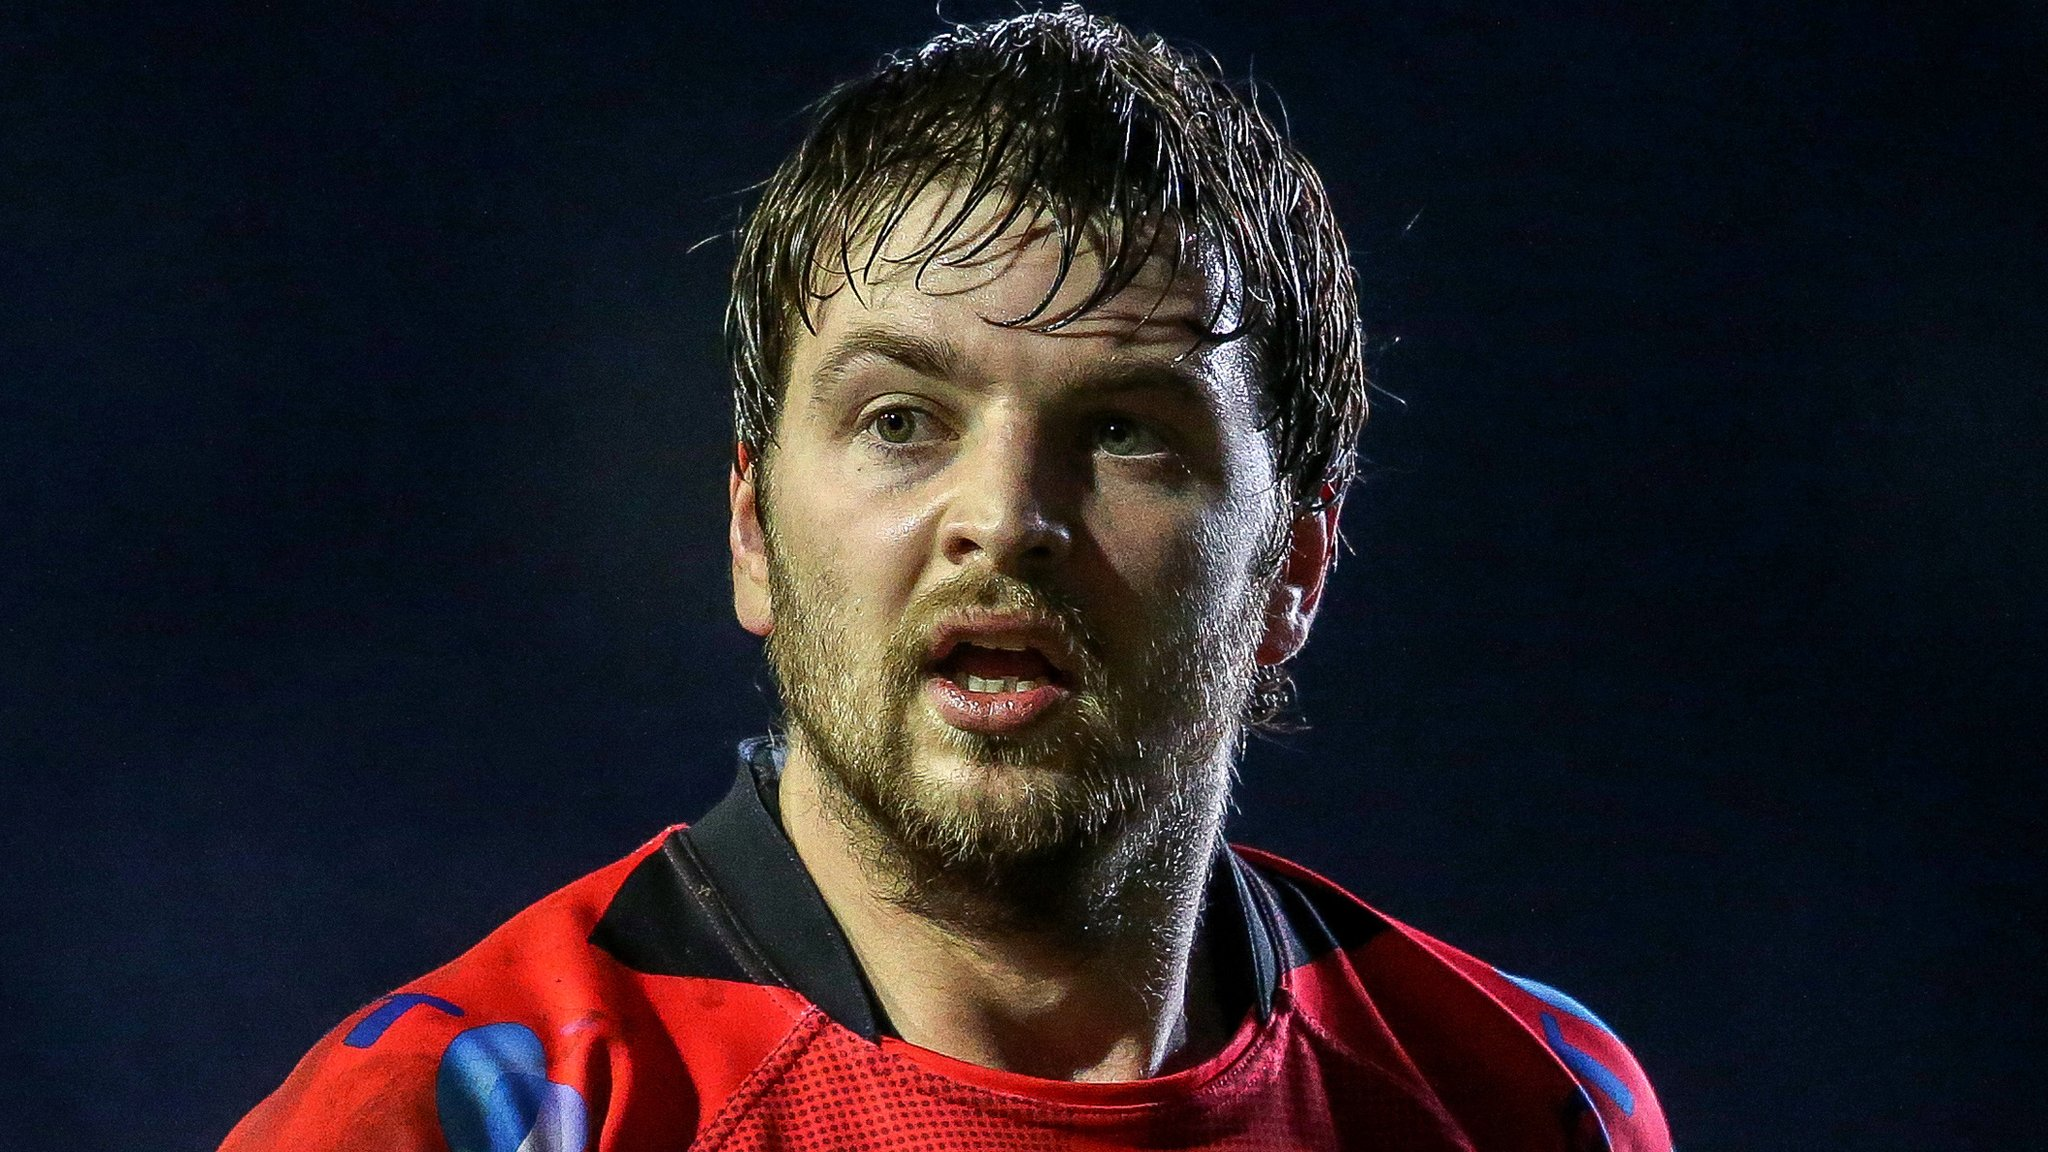 European Champions Cup: Iain Henderson remains Ulster doubt for Leinster game